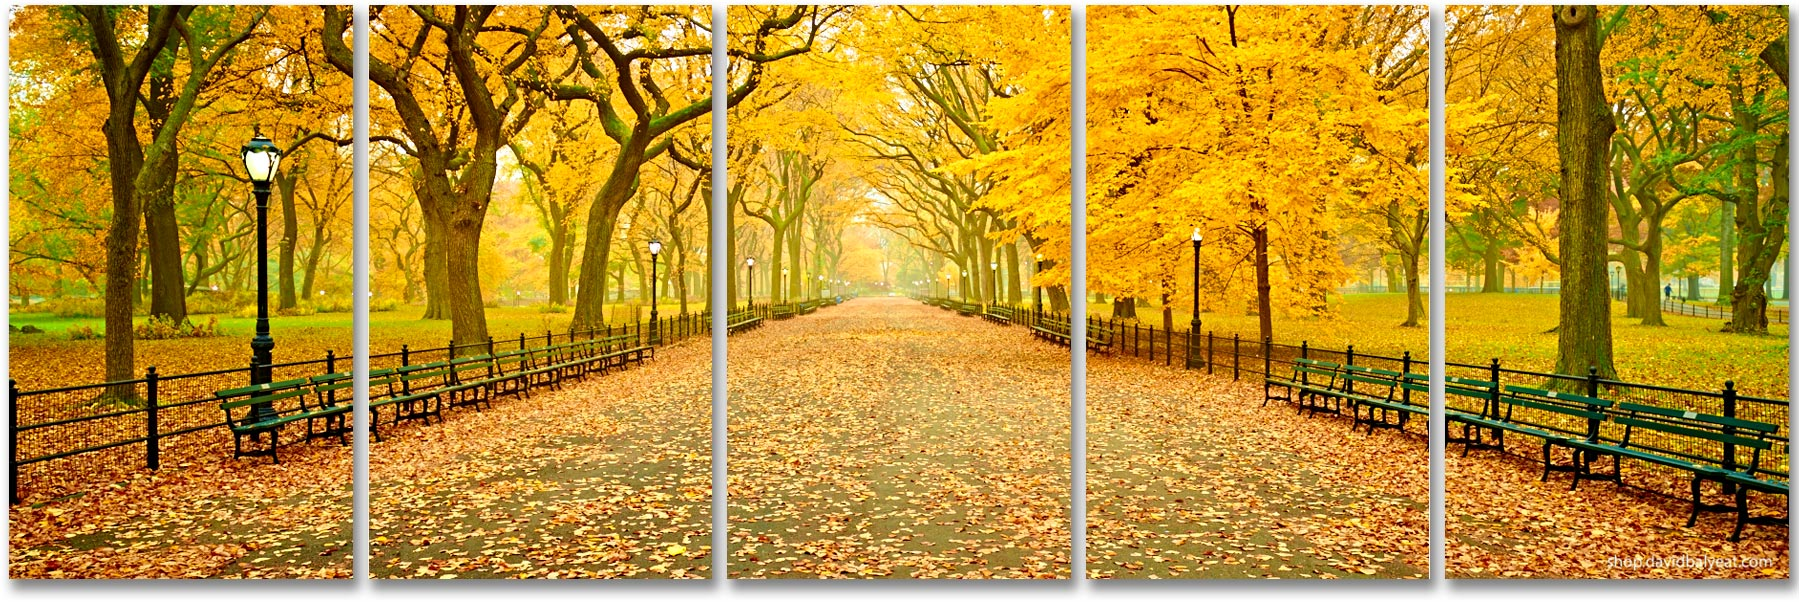 Central Park New York City Autumn Panoramic Fall high-definition HD professional landscape photography